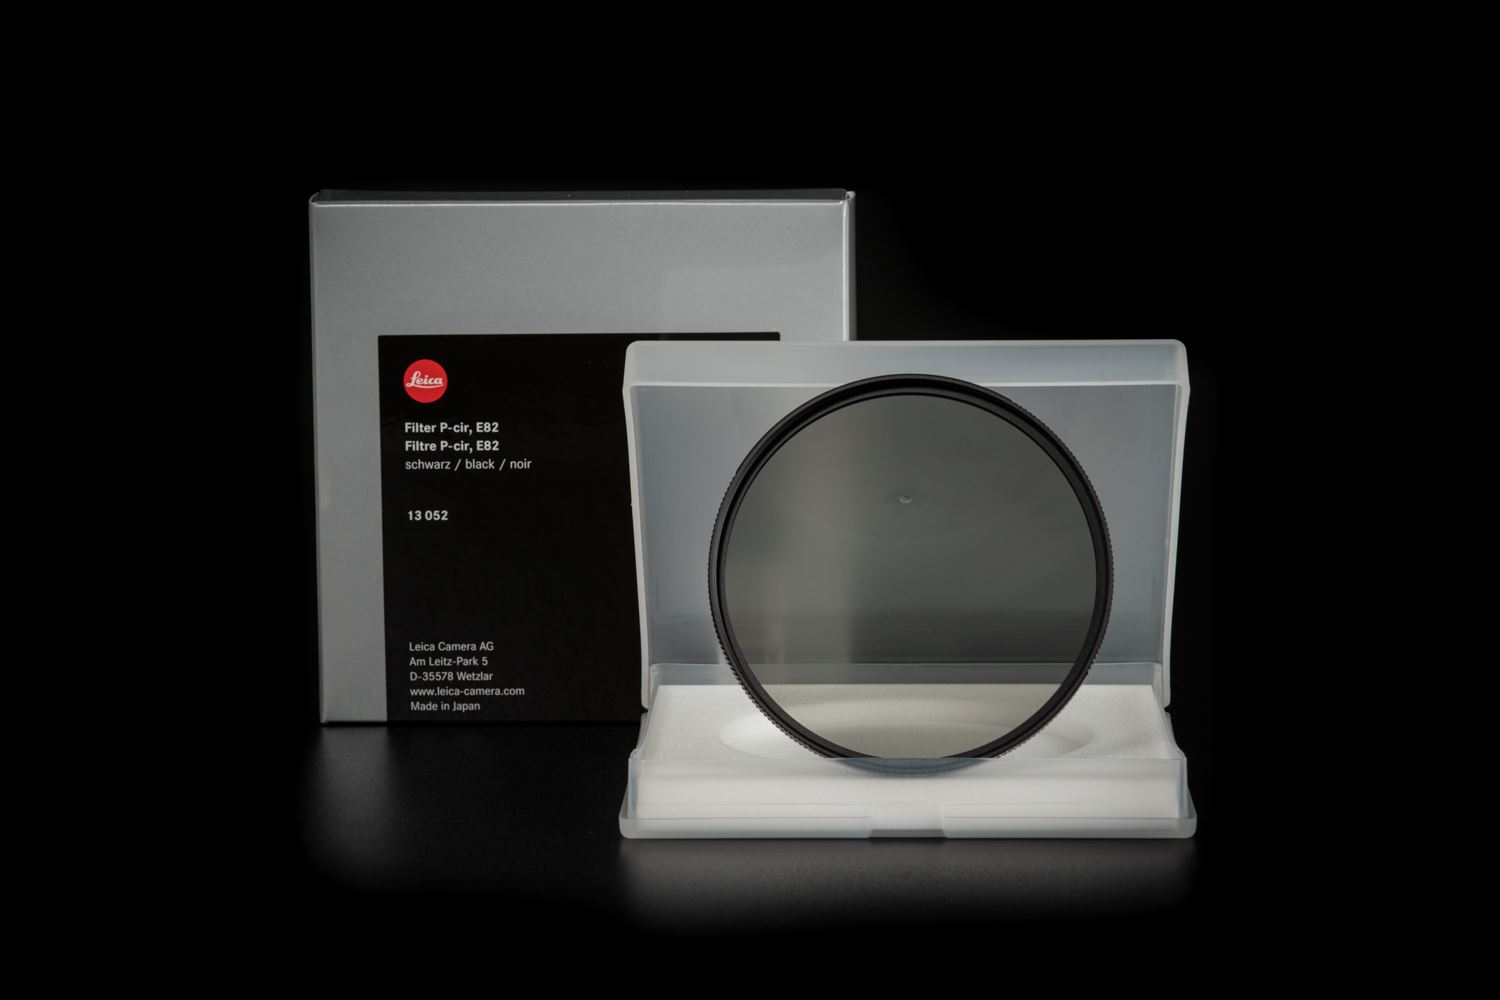 Picture of Leica Filter P-cir, E82, black